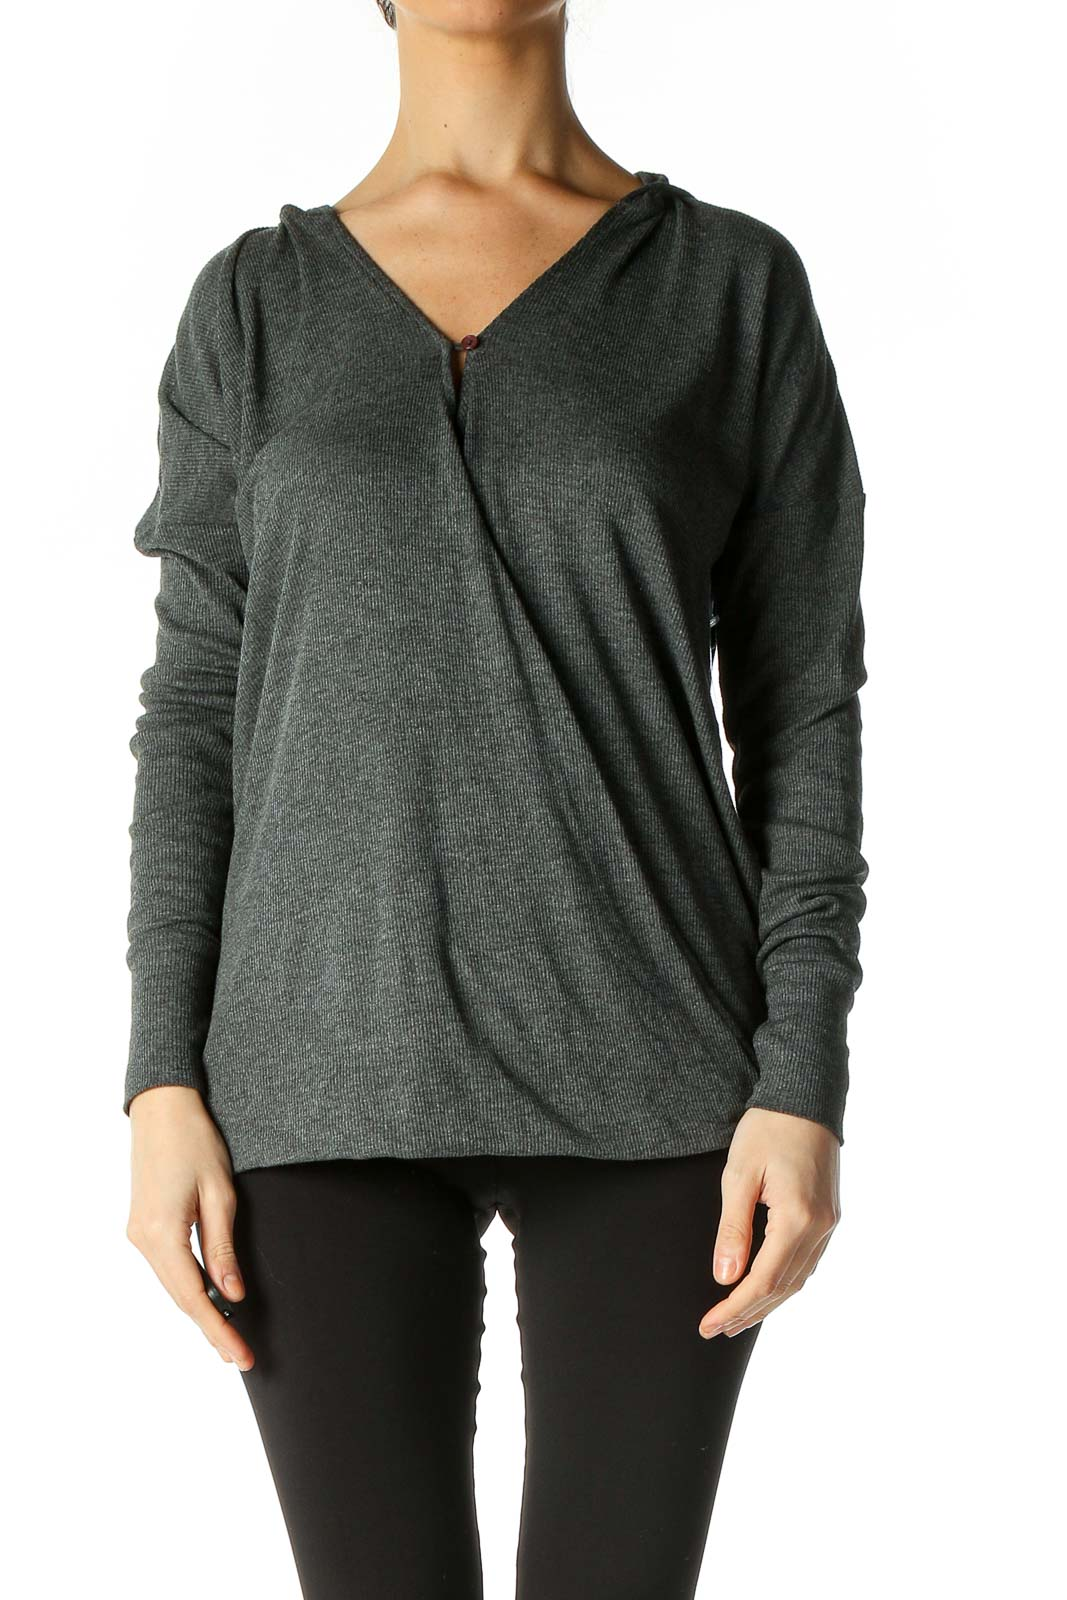 Gray Textured Casual Blouse Front